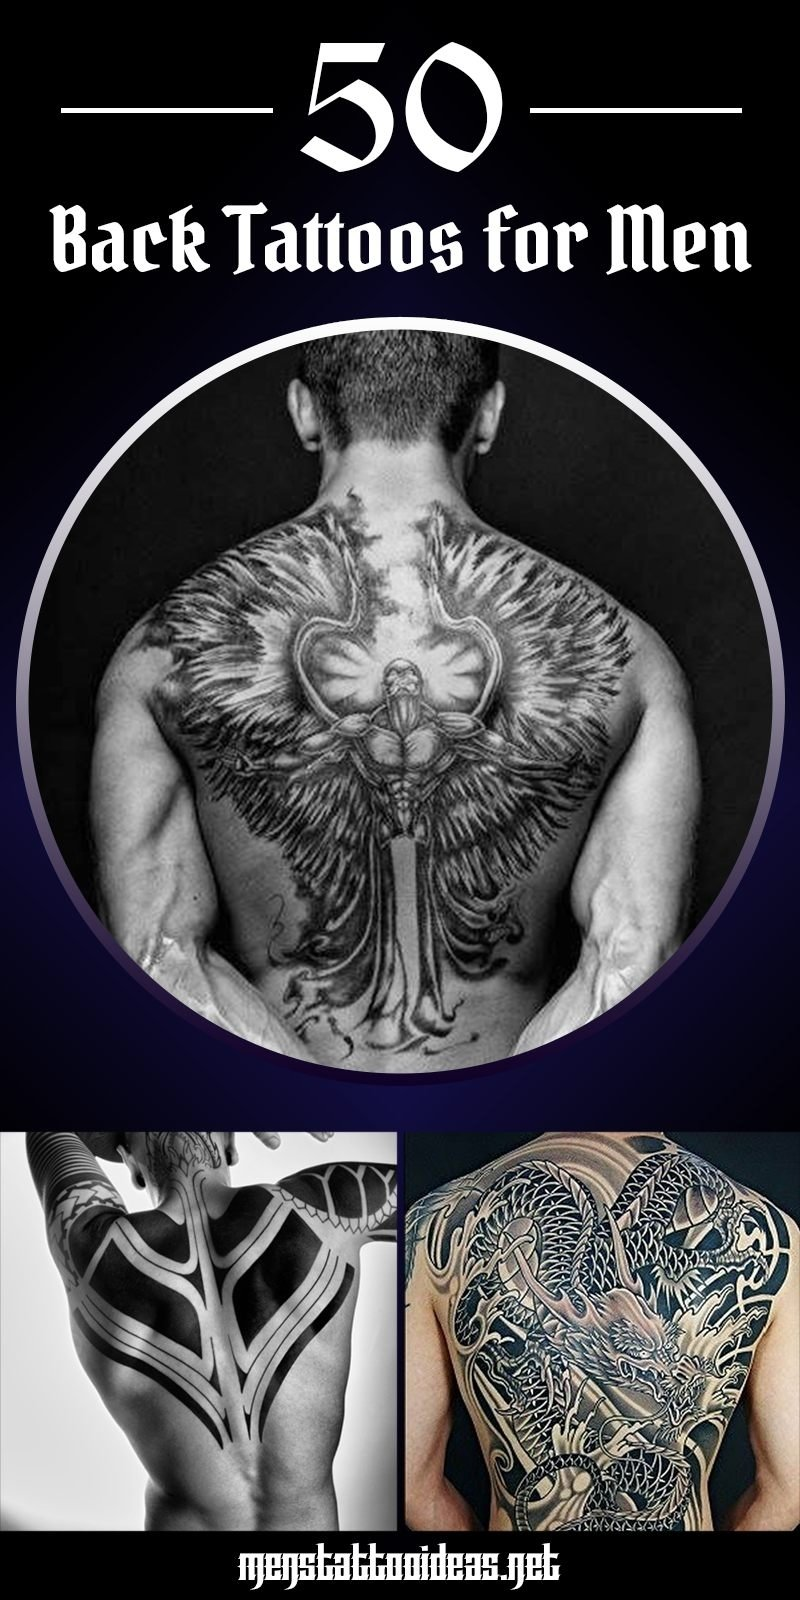 10 Fantastic Back Tattoo Ideas For Guys back tattoos for men ideas and designs for guys 2021